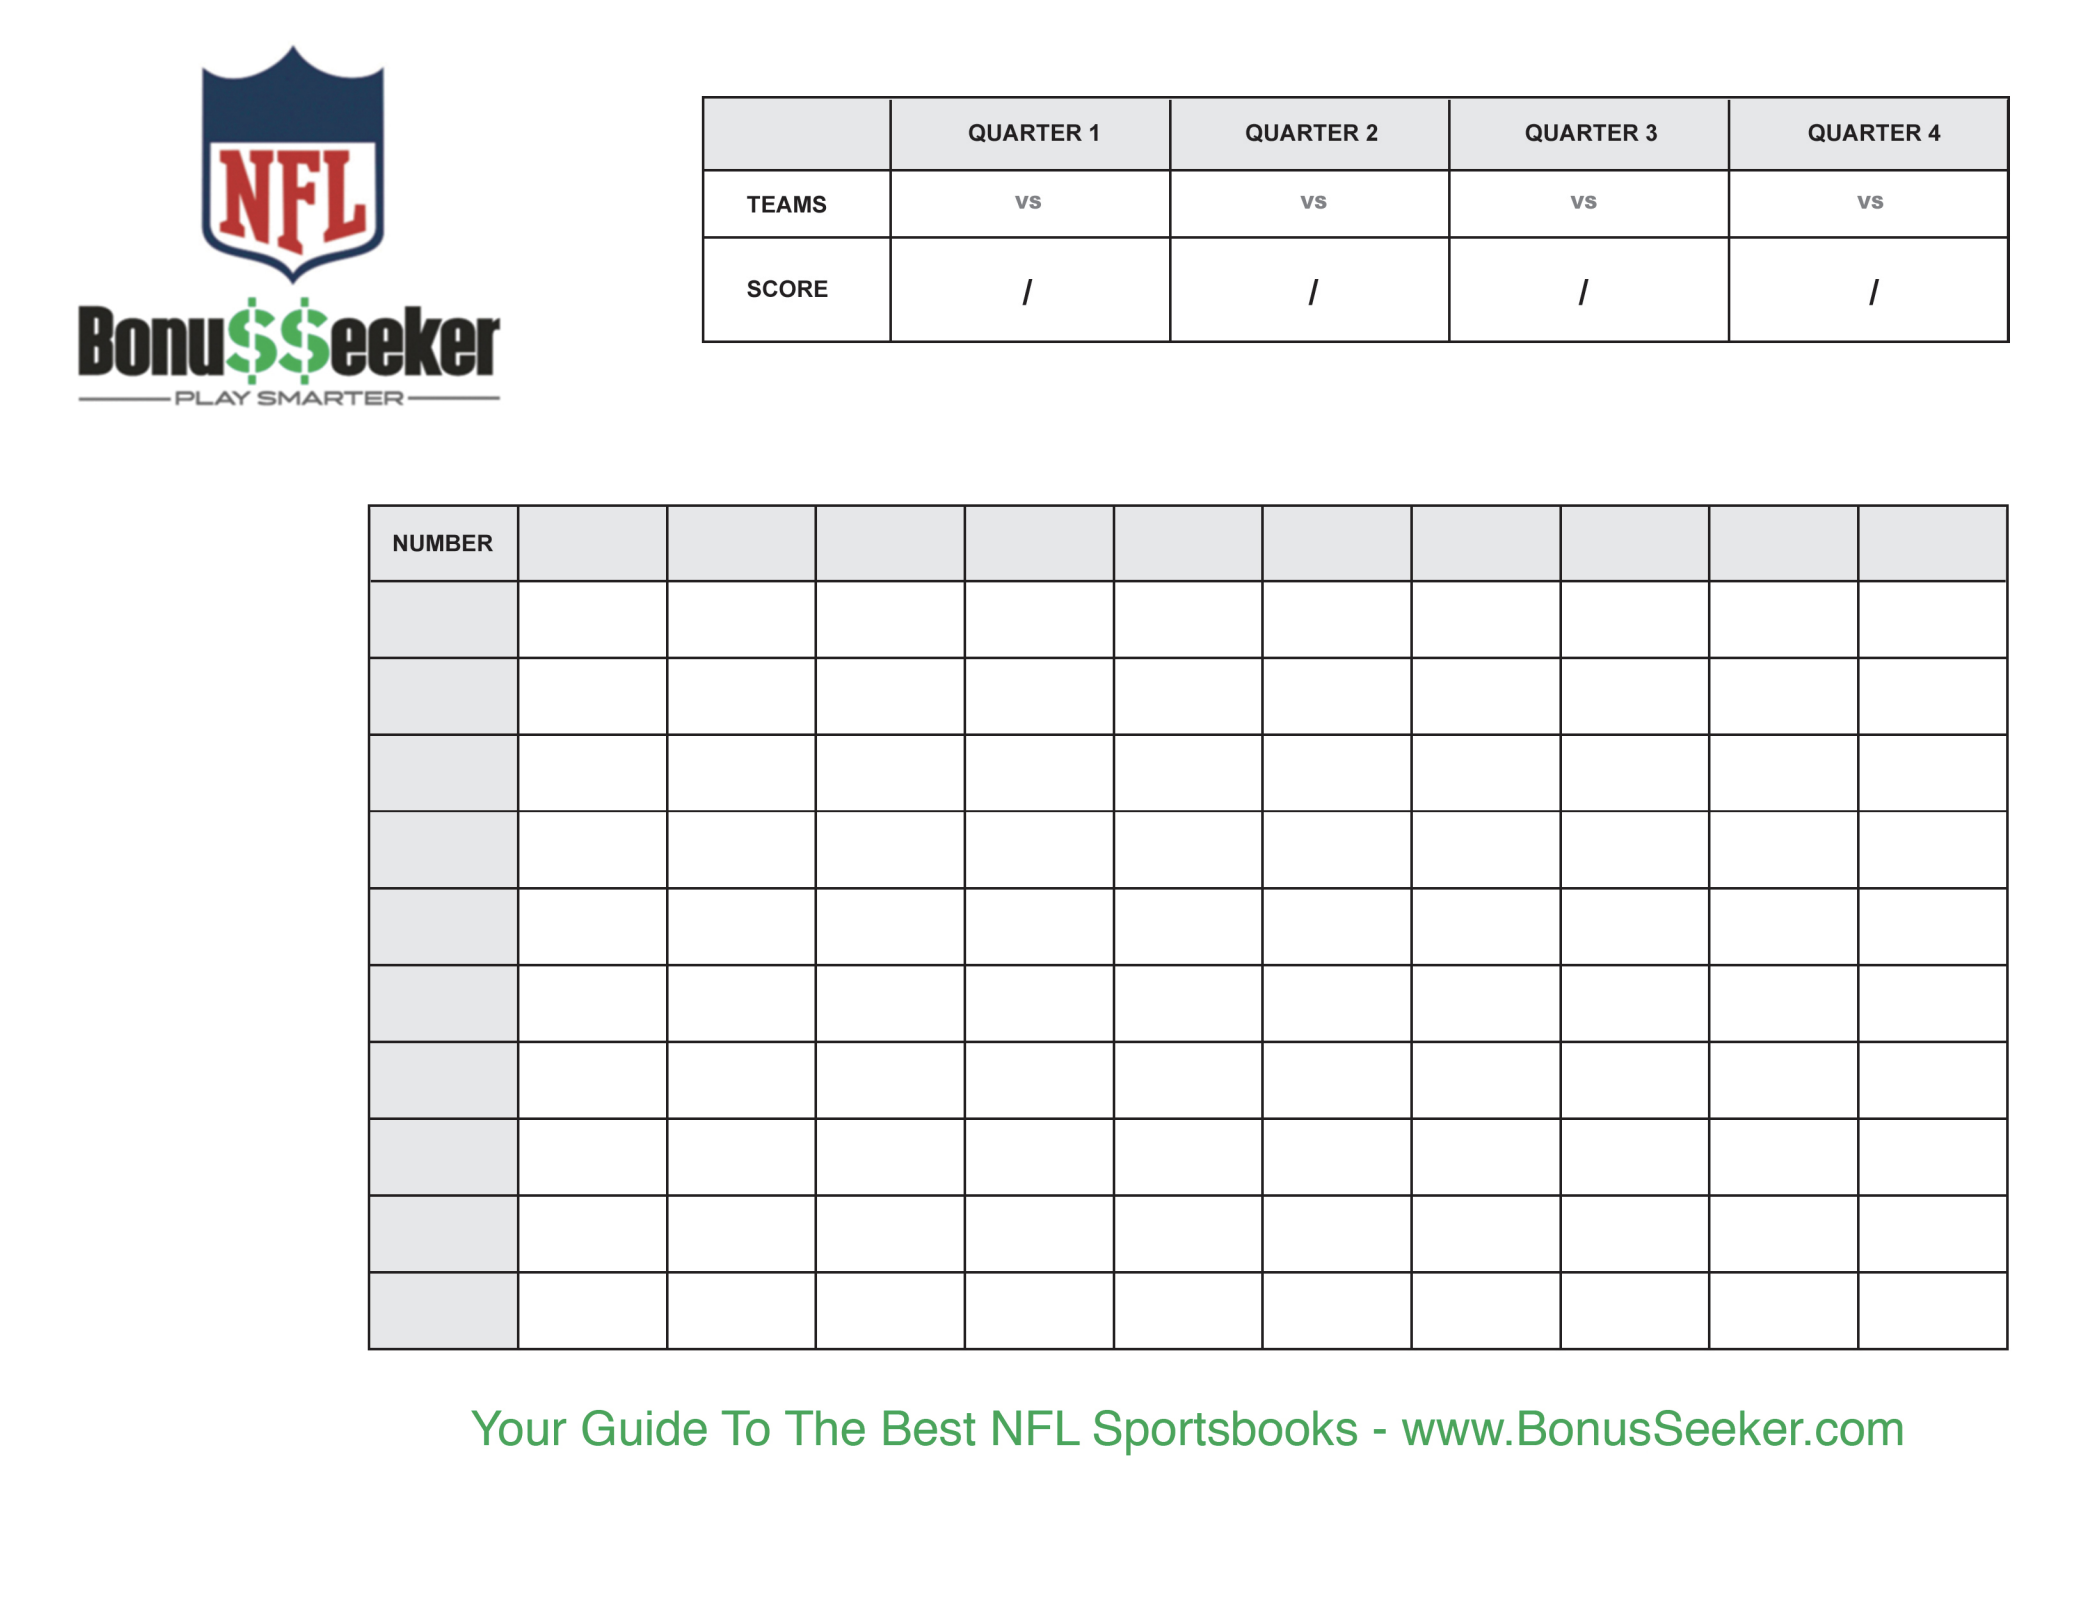 Super bowl 2021 betting squares template uk betting sites free bets without deposit